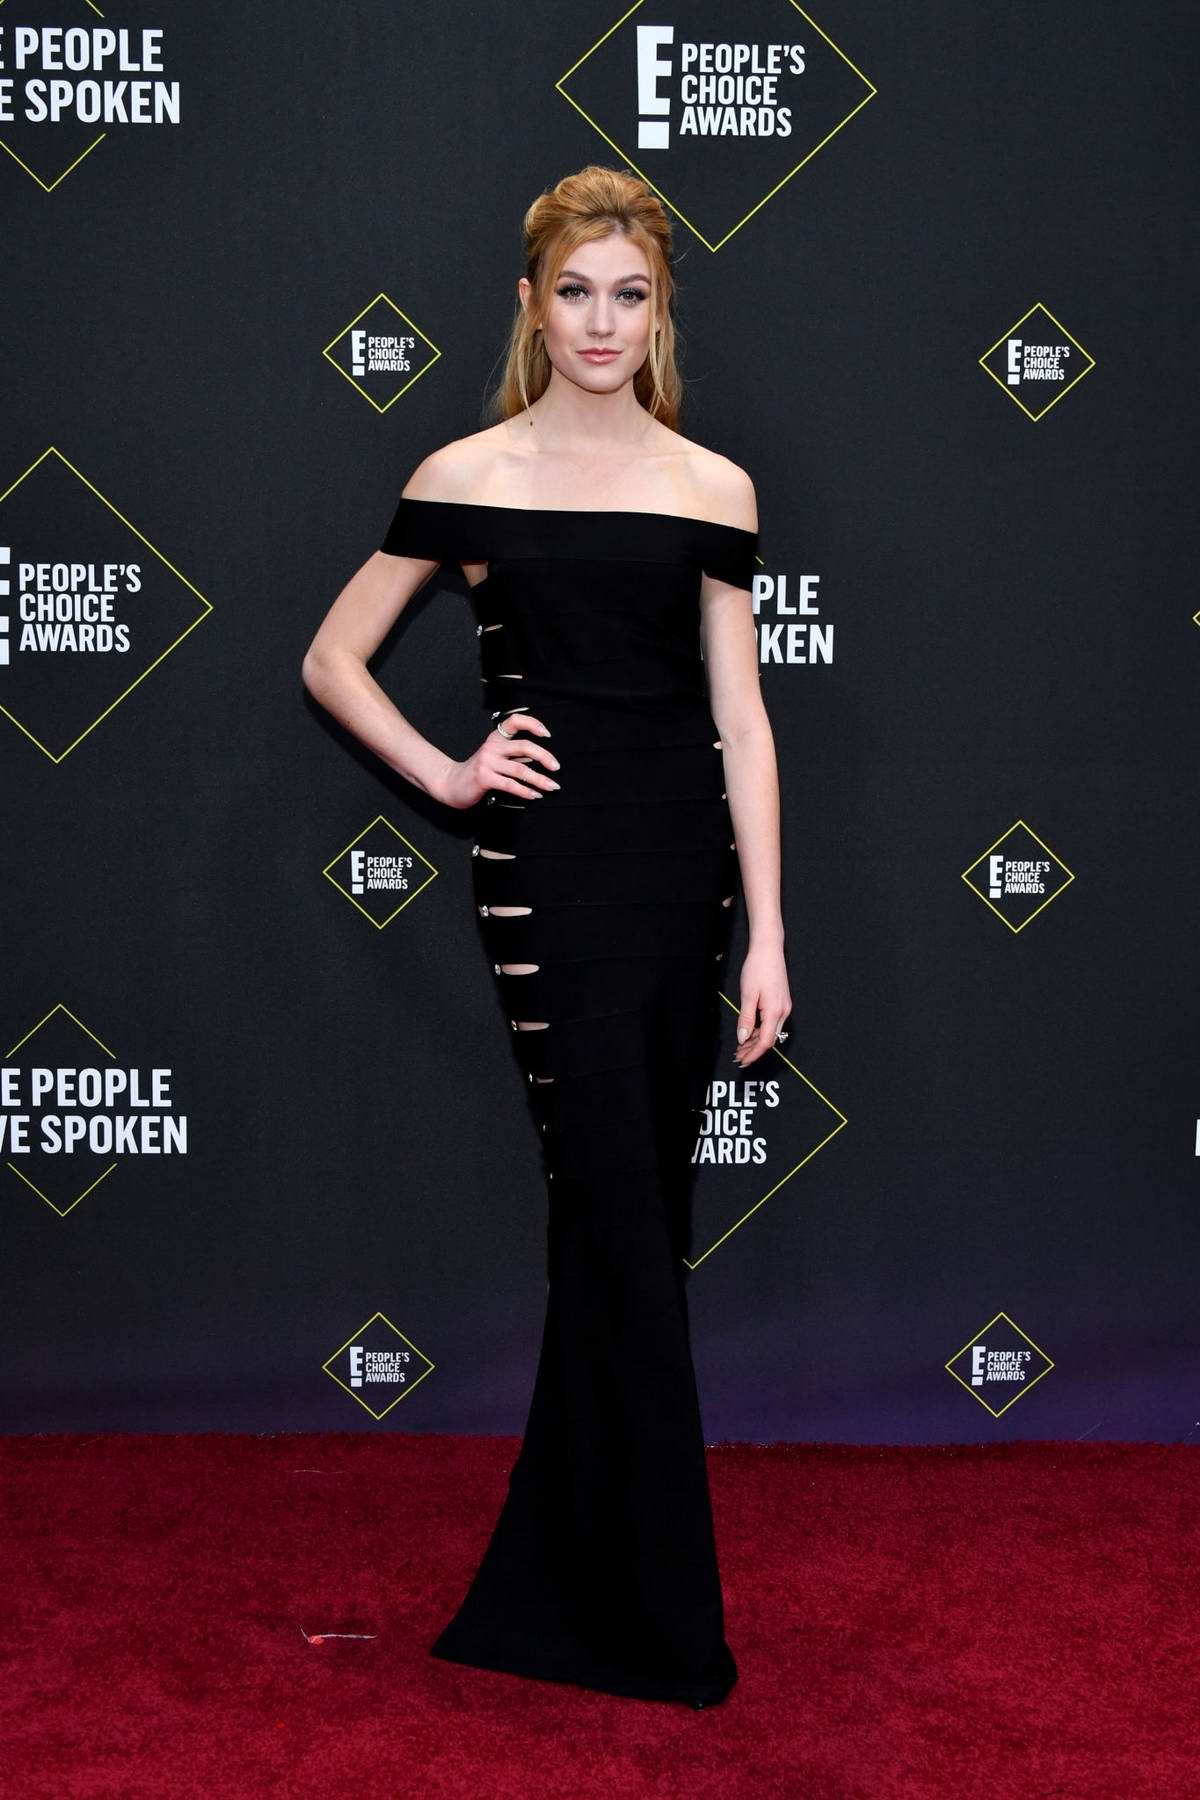 Katherine McNamara attends the 2019 E! People's Choice Awards held at the Barker Hangar in Santa Monica, California